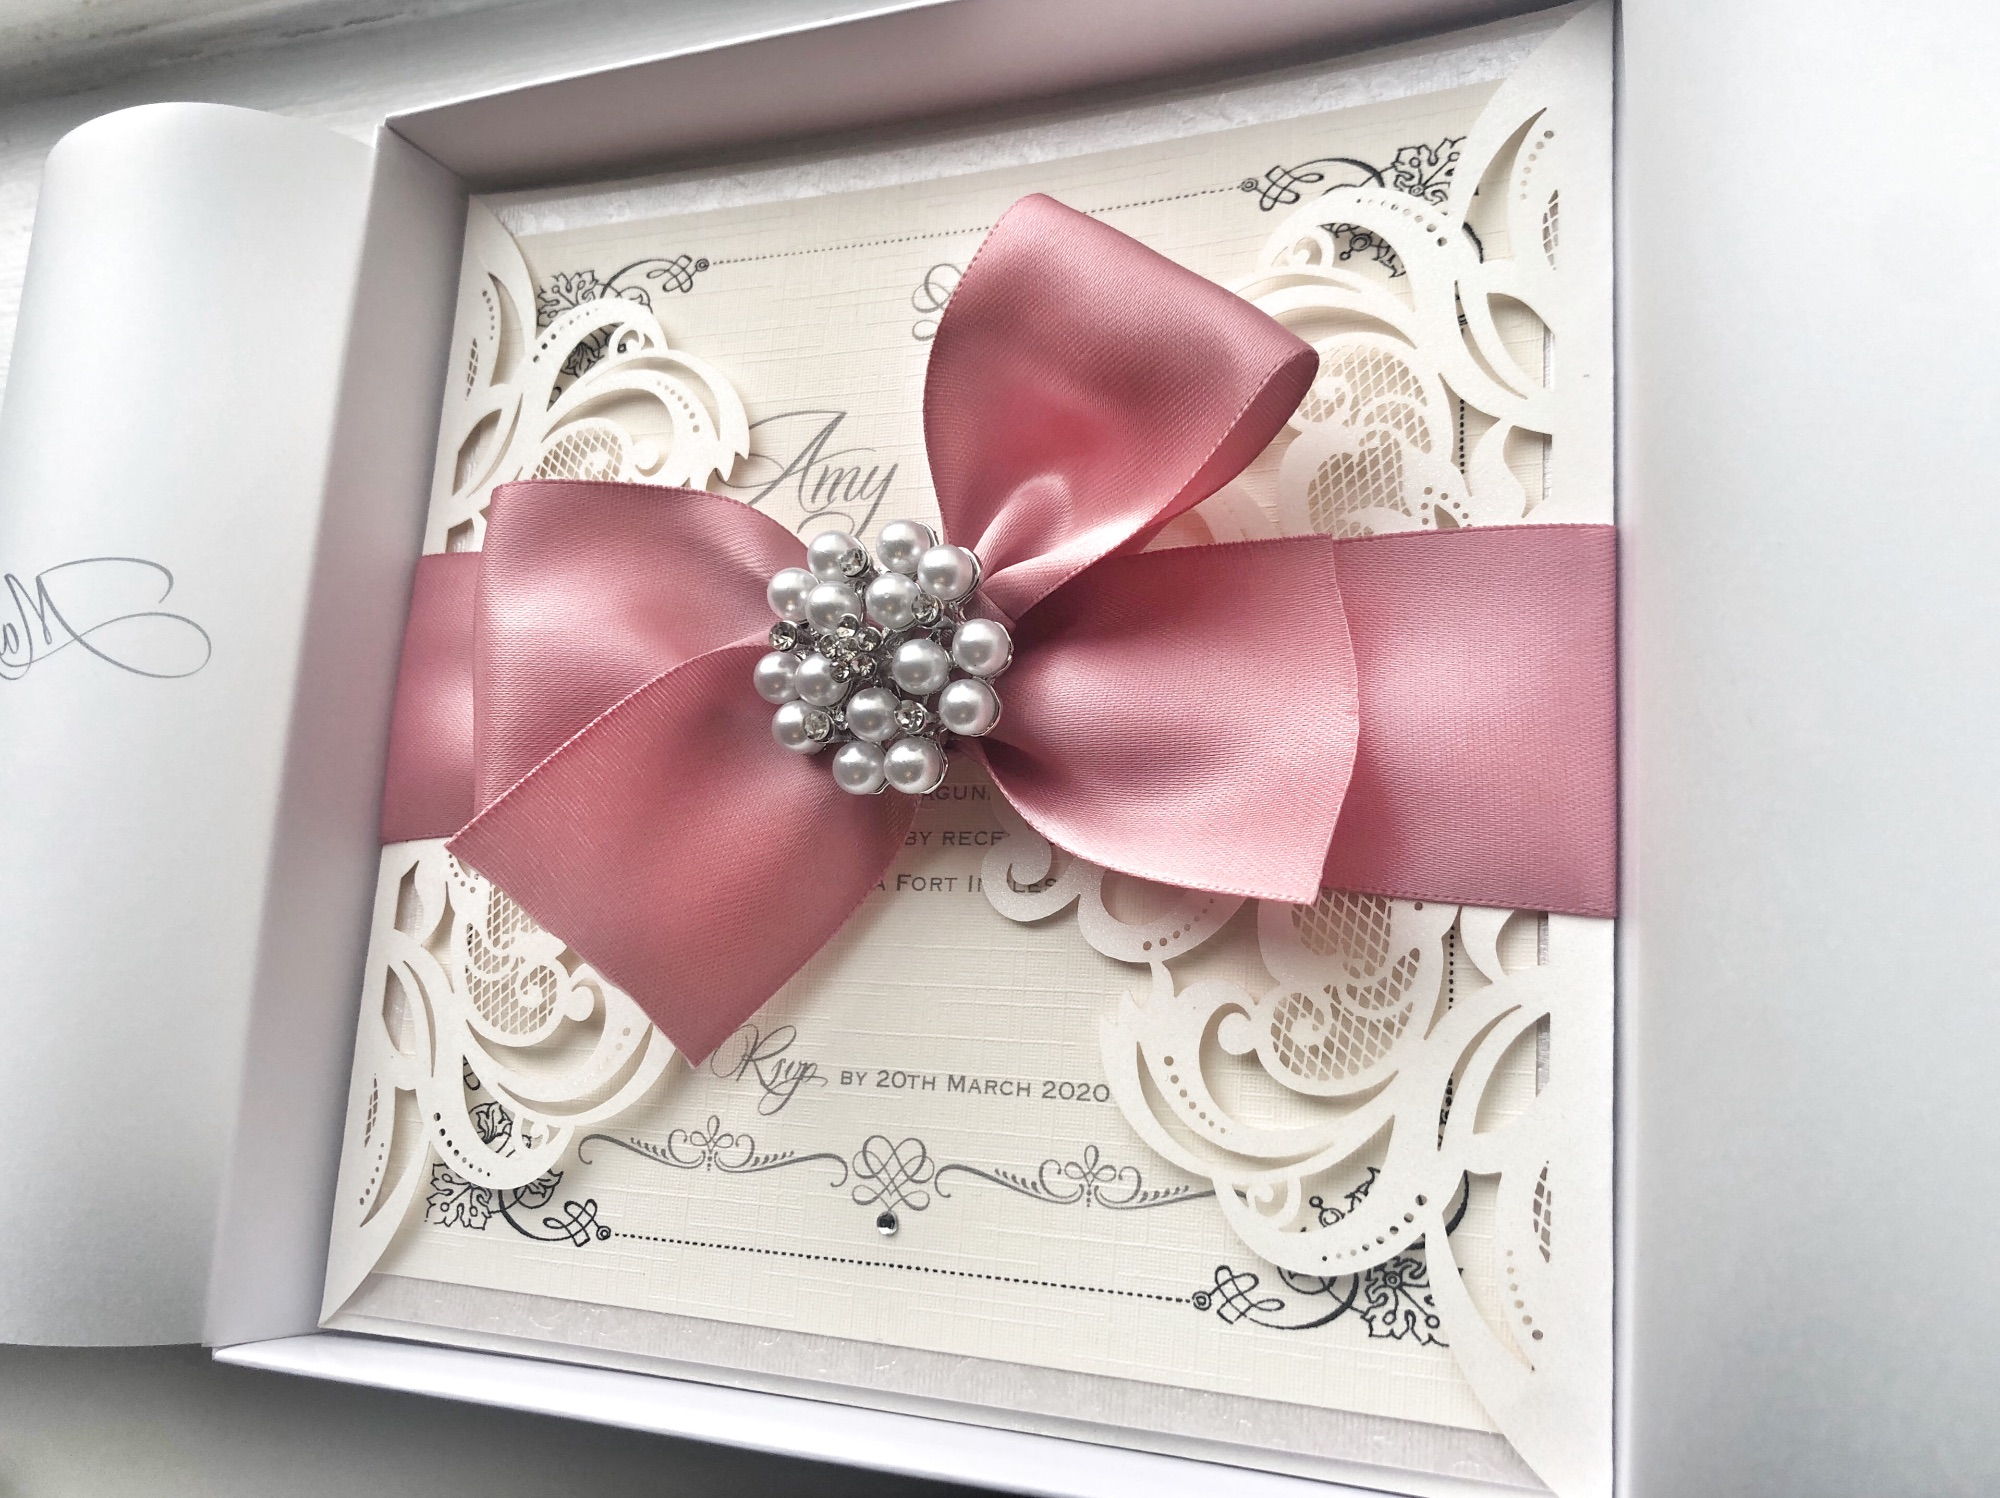 Luxury boxed wedding invitations with large pearl bow